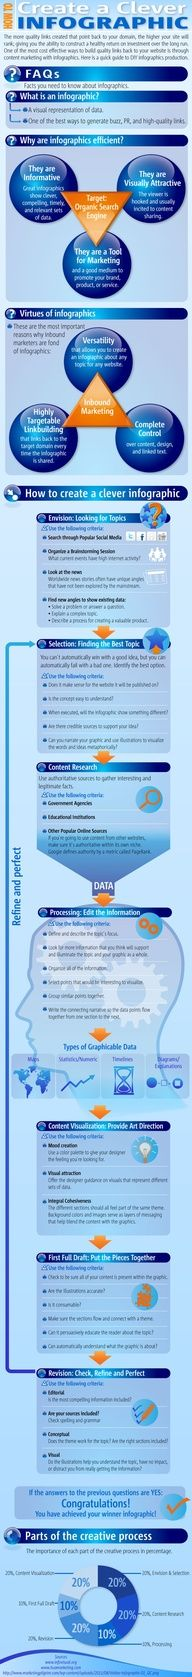 How to Create a Clever Infographic => good to share w/ #PR students